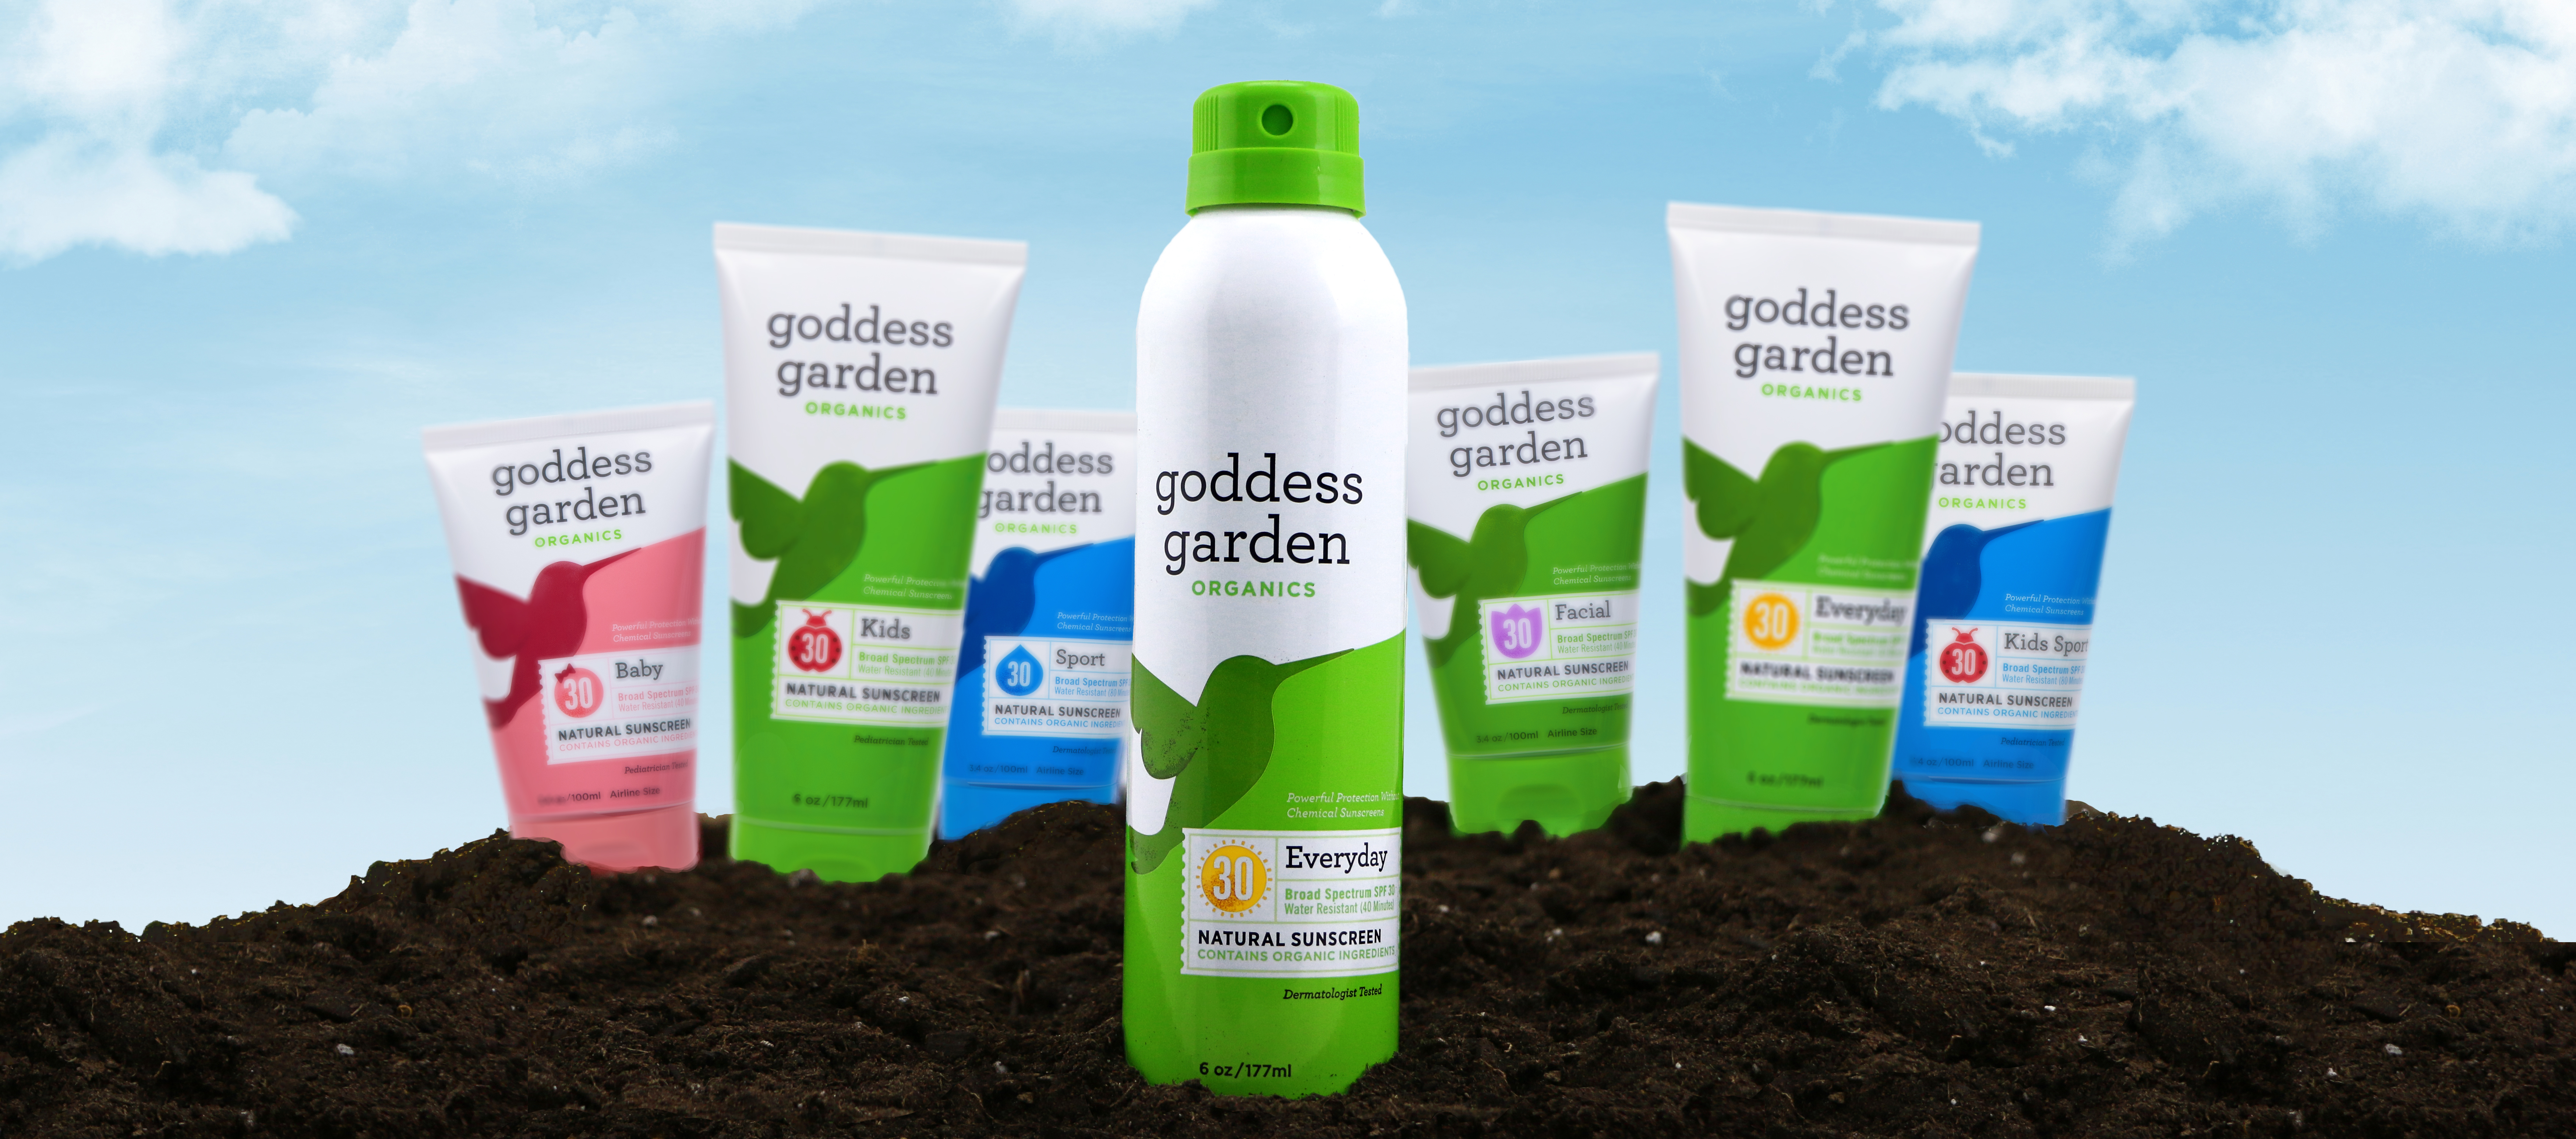 mineral sunscreen safe category organics chemical cspray ss garden everyday reef natural free goddess and product